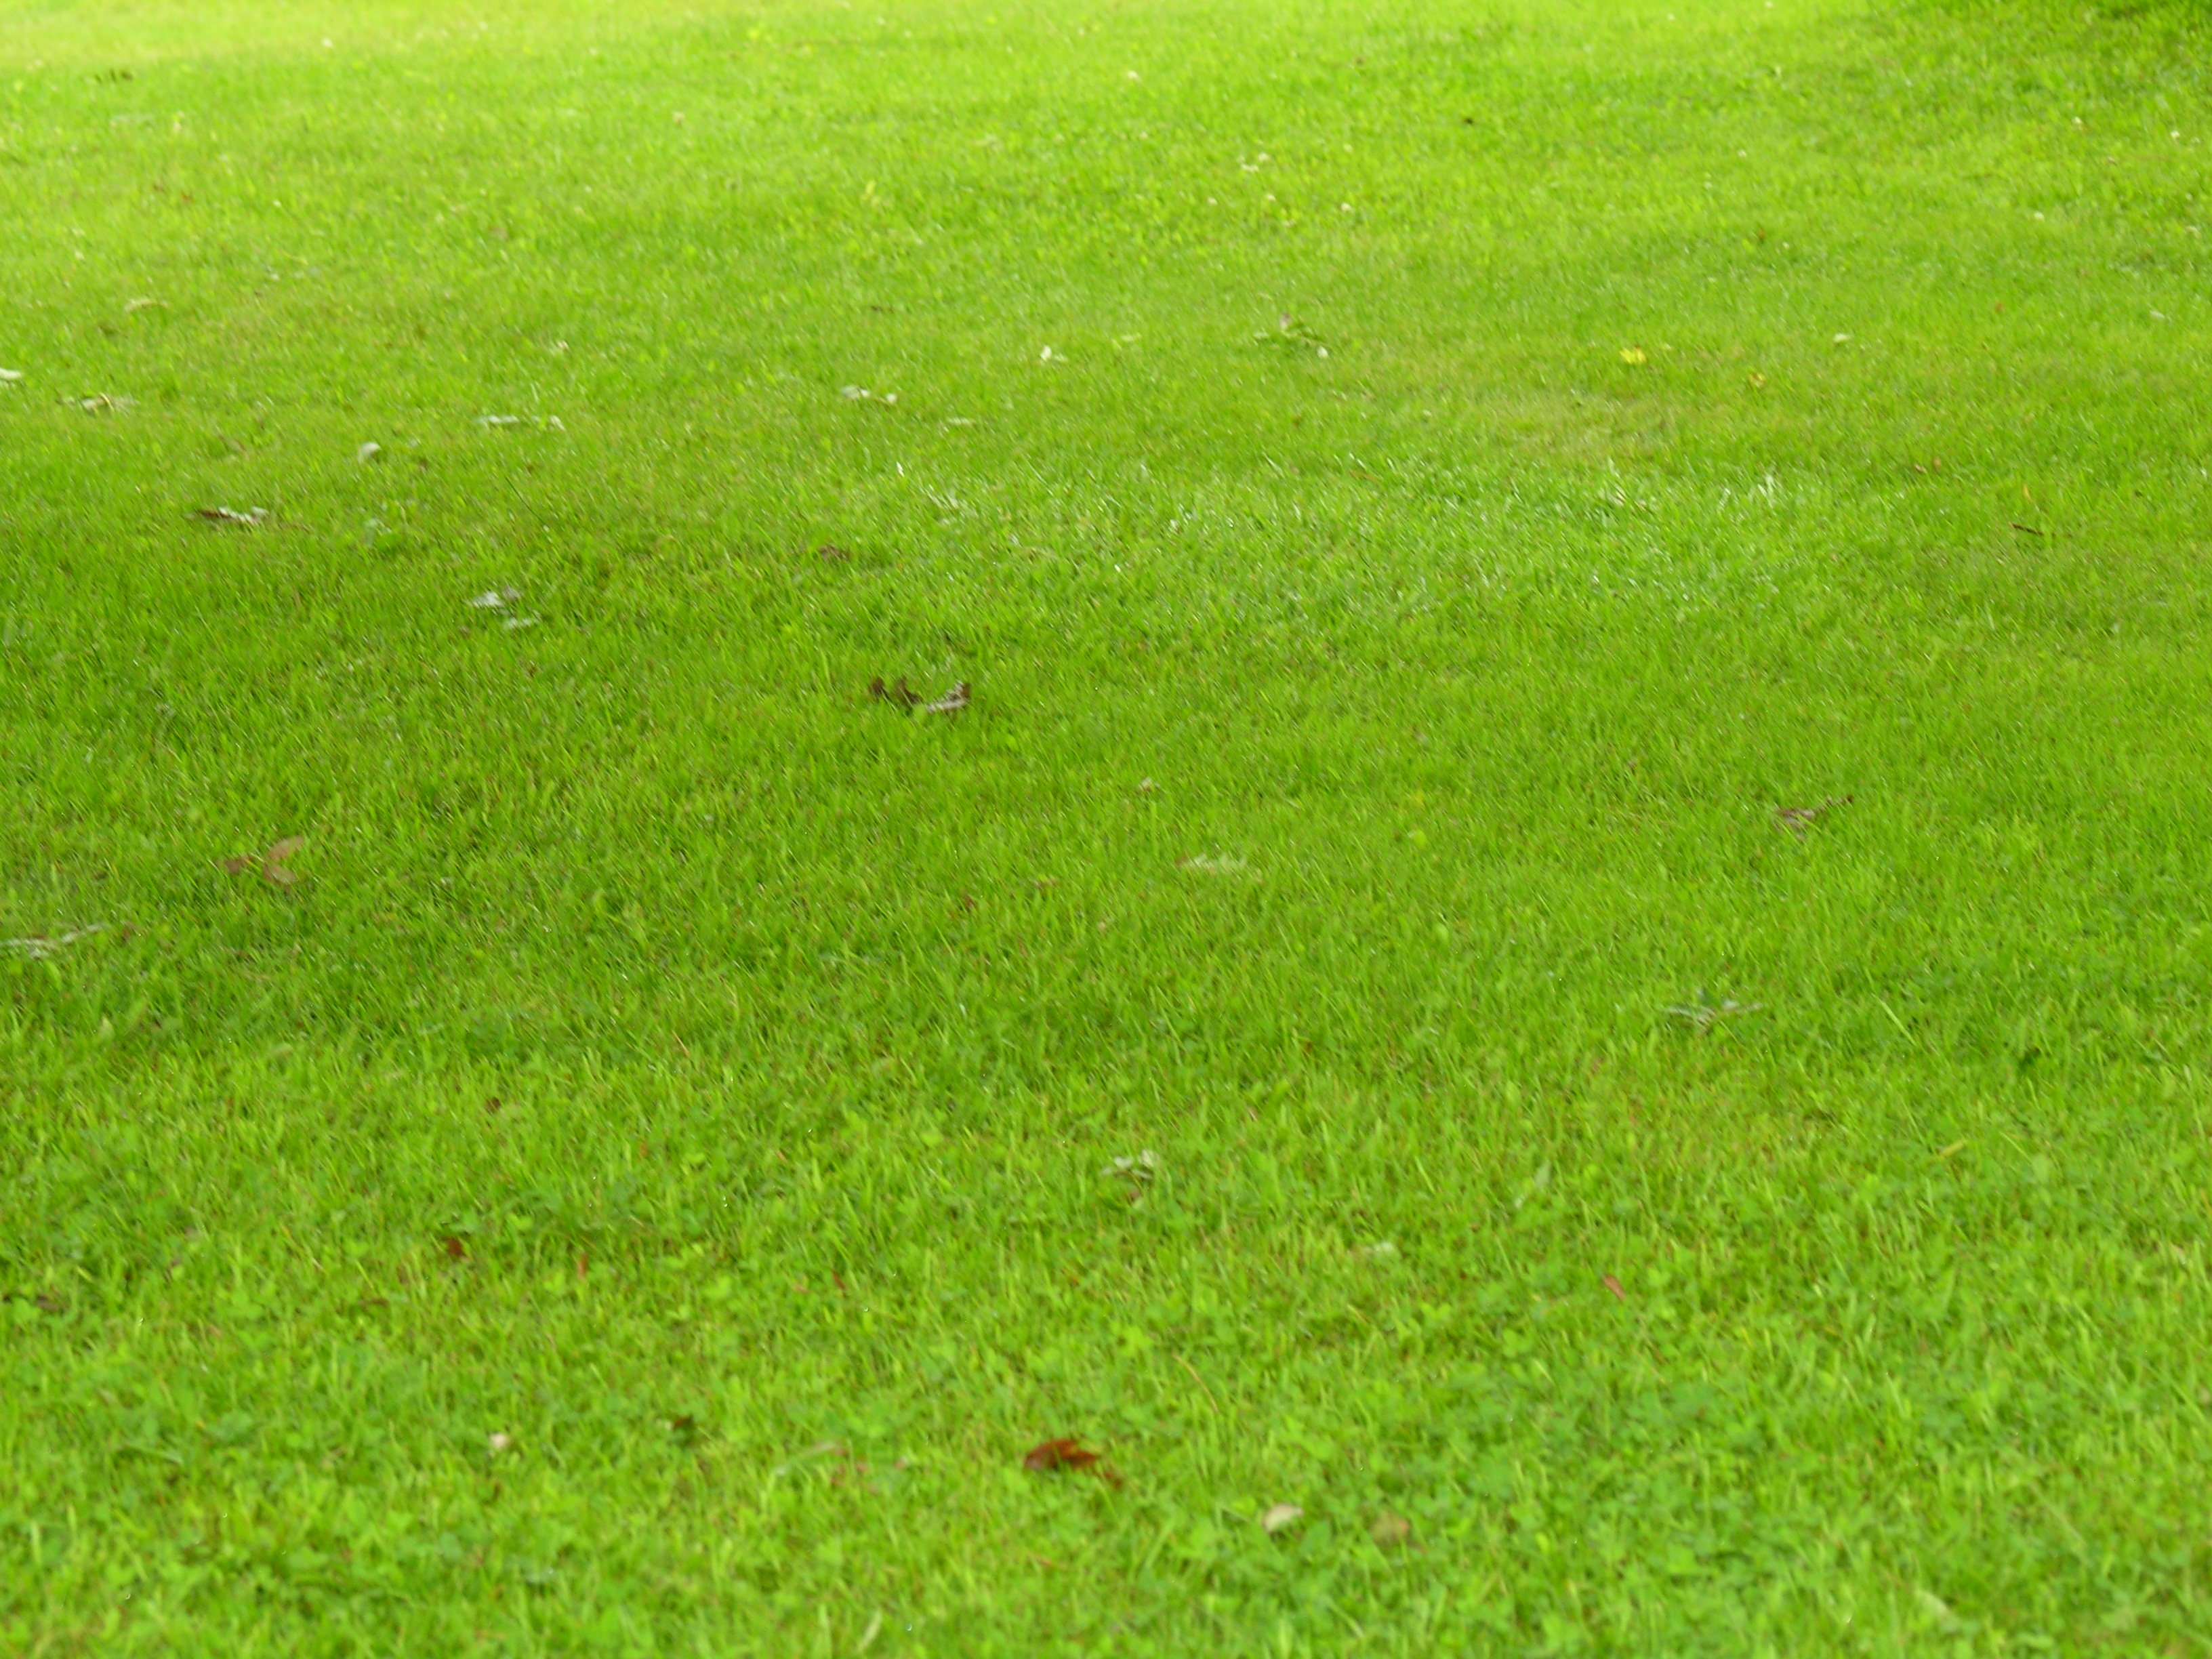 My incredibly green lawn